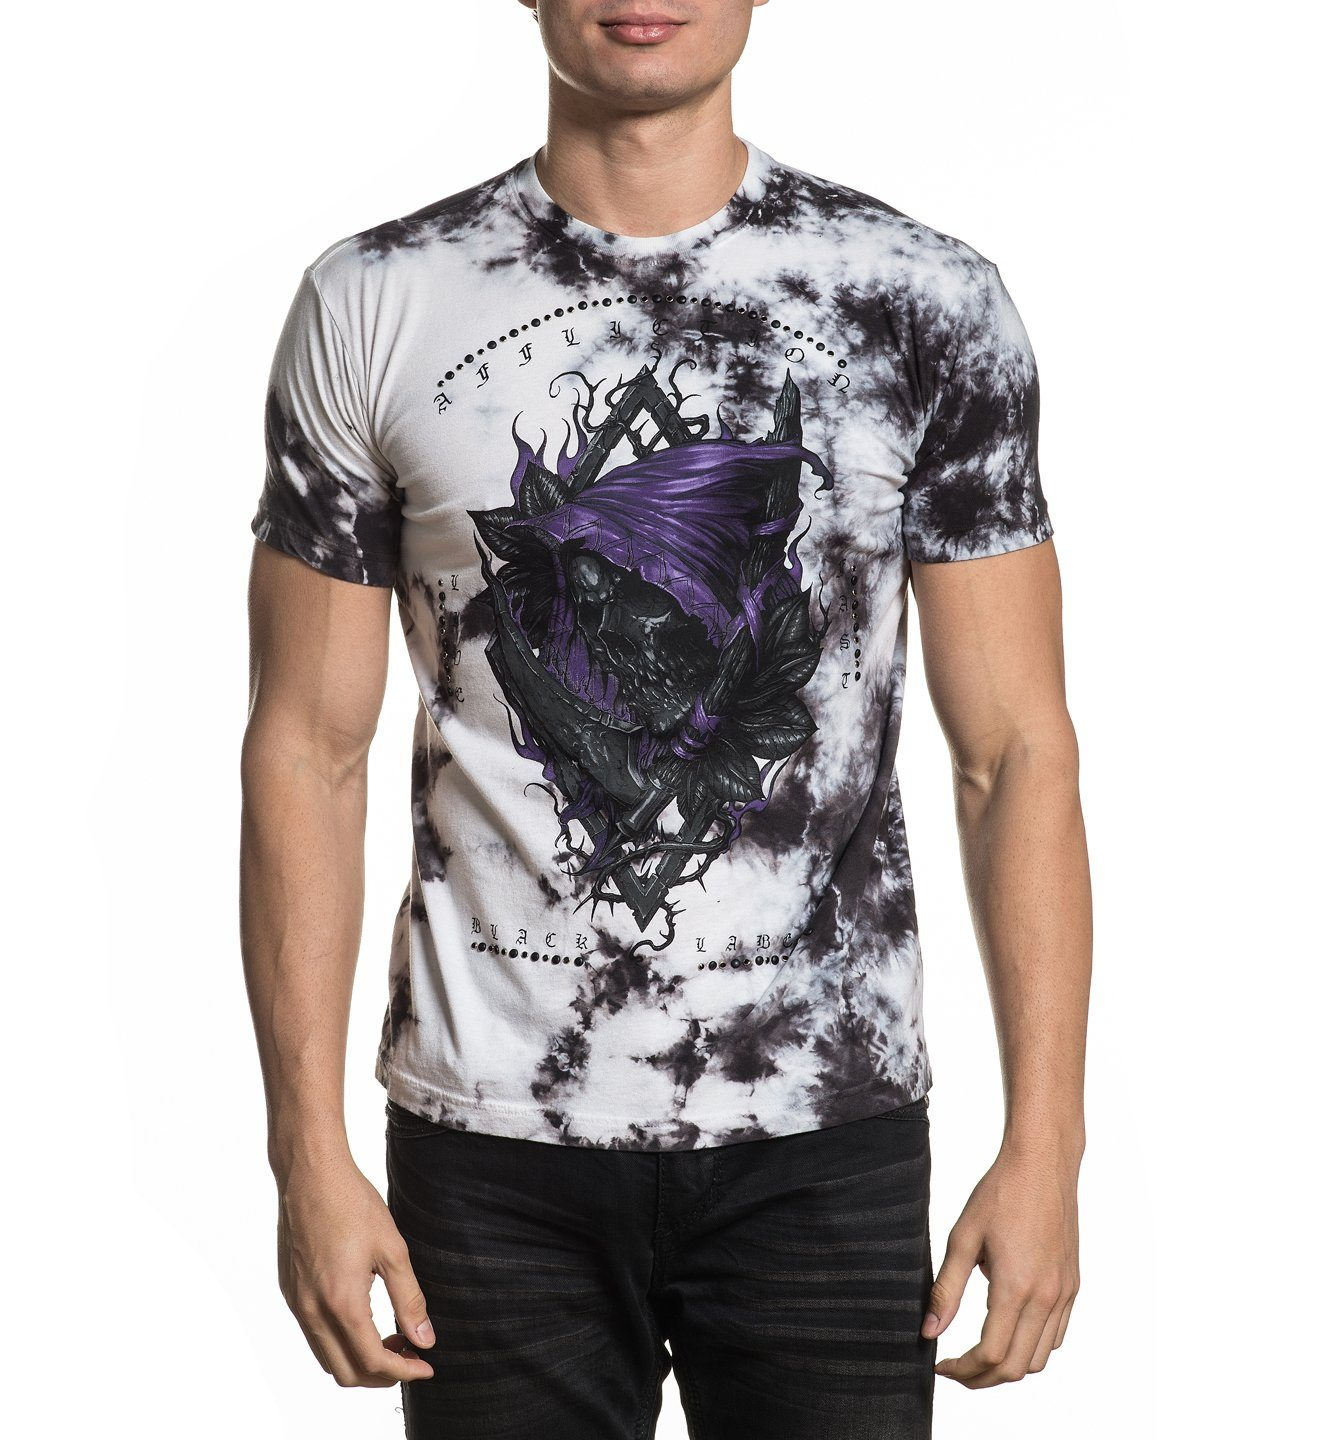 Mens Short Sleeve Tees - Forged In Dust